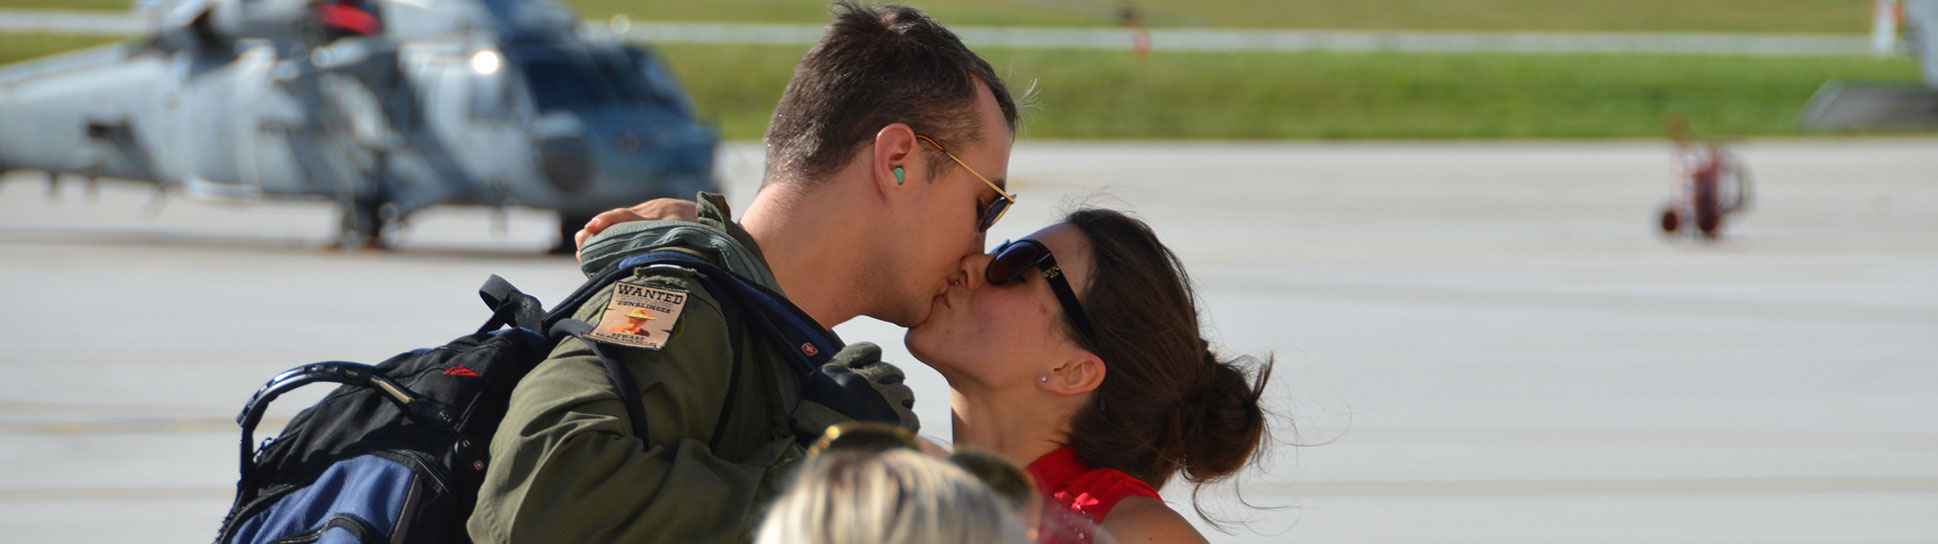 Lt. Scott Brady reunites with his wife Brittany after Helicopter Sea Combat Squadron (HSC) 25 Det 1 returned from a seven-month deployment in the Indo-Asia-Pacific region. (U.S. Navy/John McSorely)